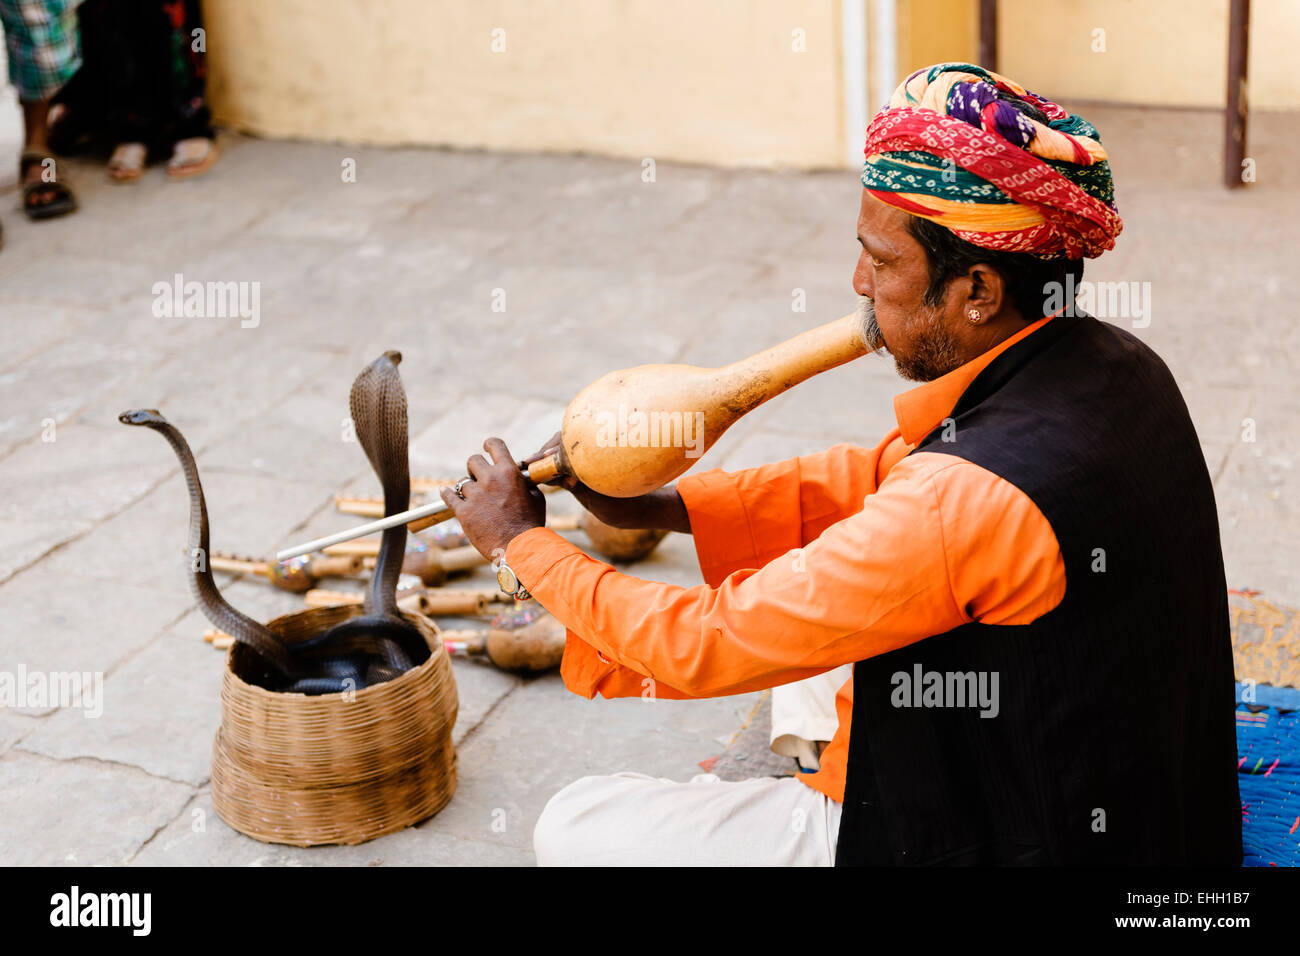 Snake charmer outside the Jaipur City Palace and Museum. Stock Photo